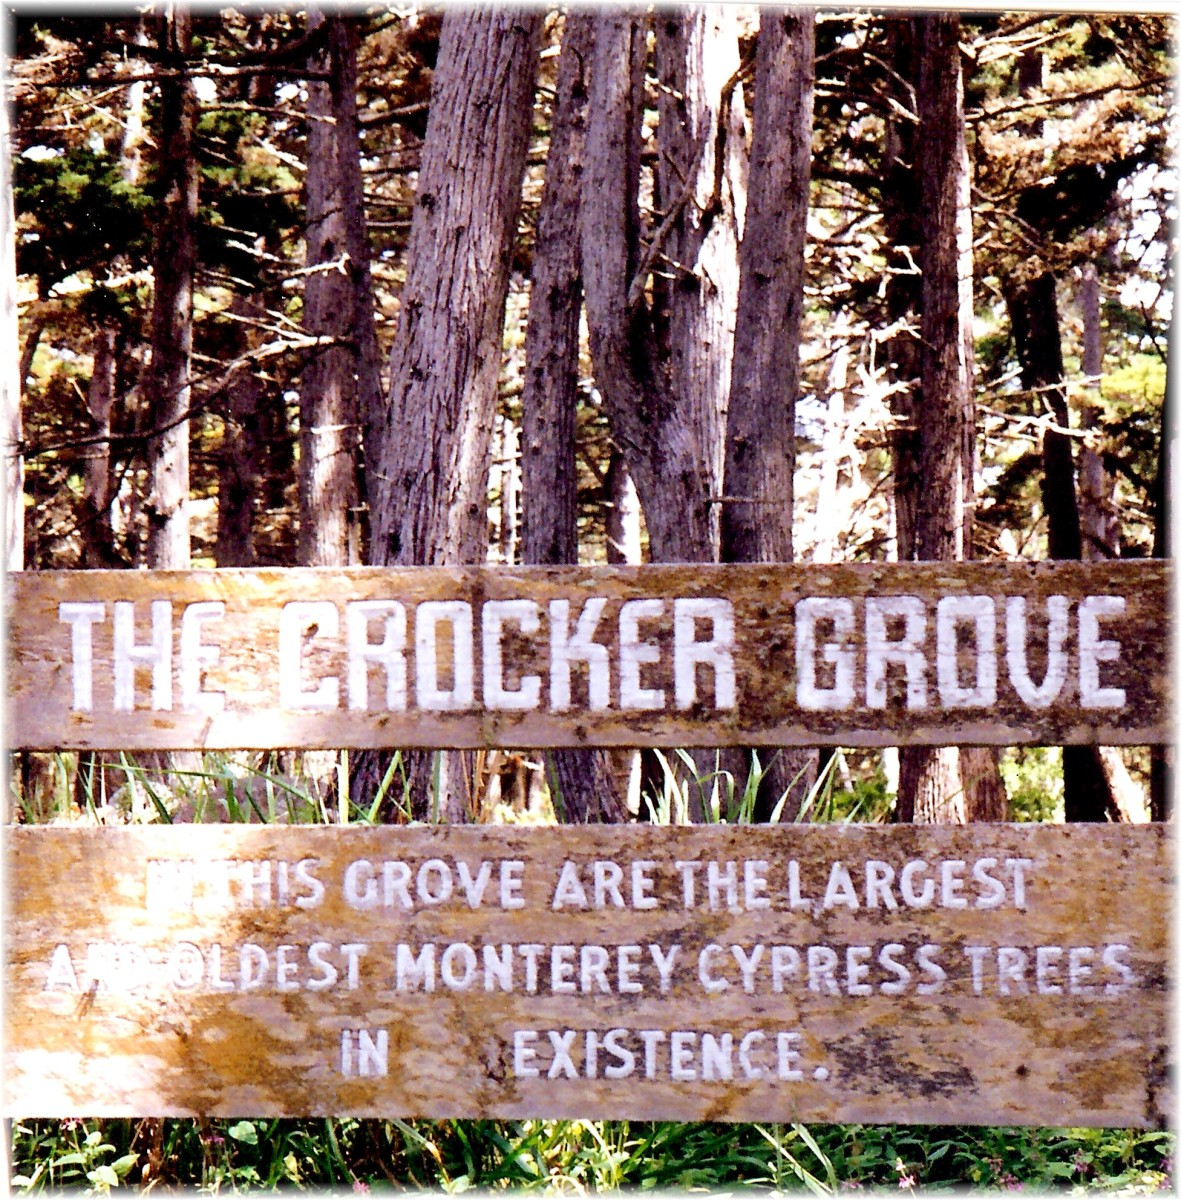 Crocker Grover sign - 17 Mile Drive